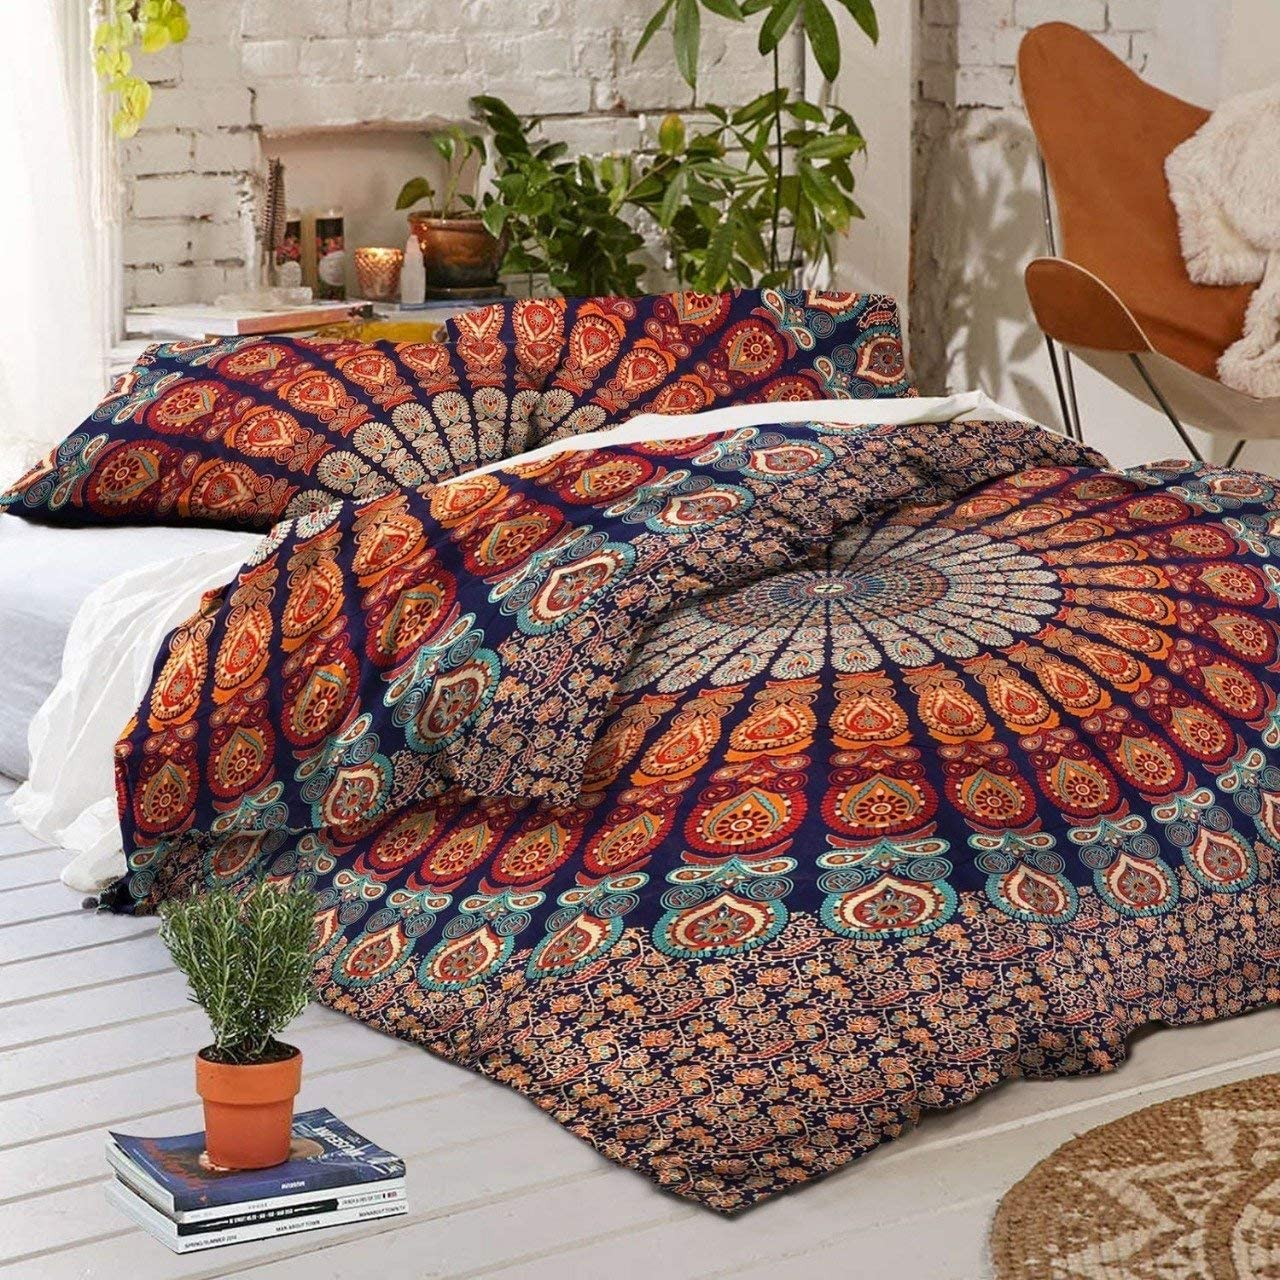 Traditional Jaipur Duvet Cover Queen Size Peacock Feather Mandala Doona Cotton Throw Bohemian Doona Cover Boho Quilt Cover